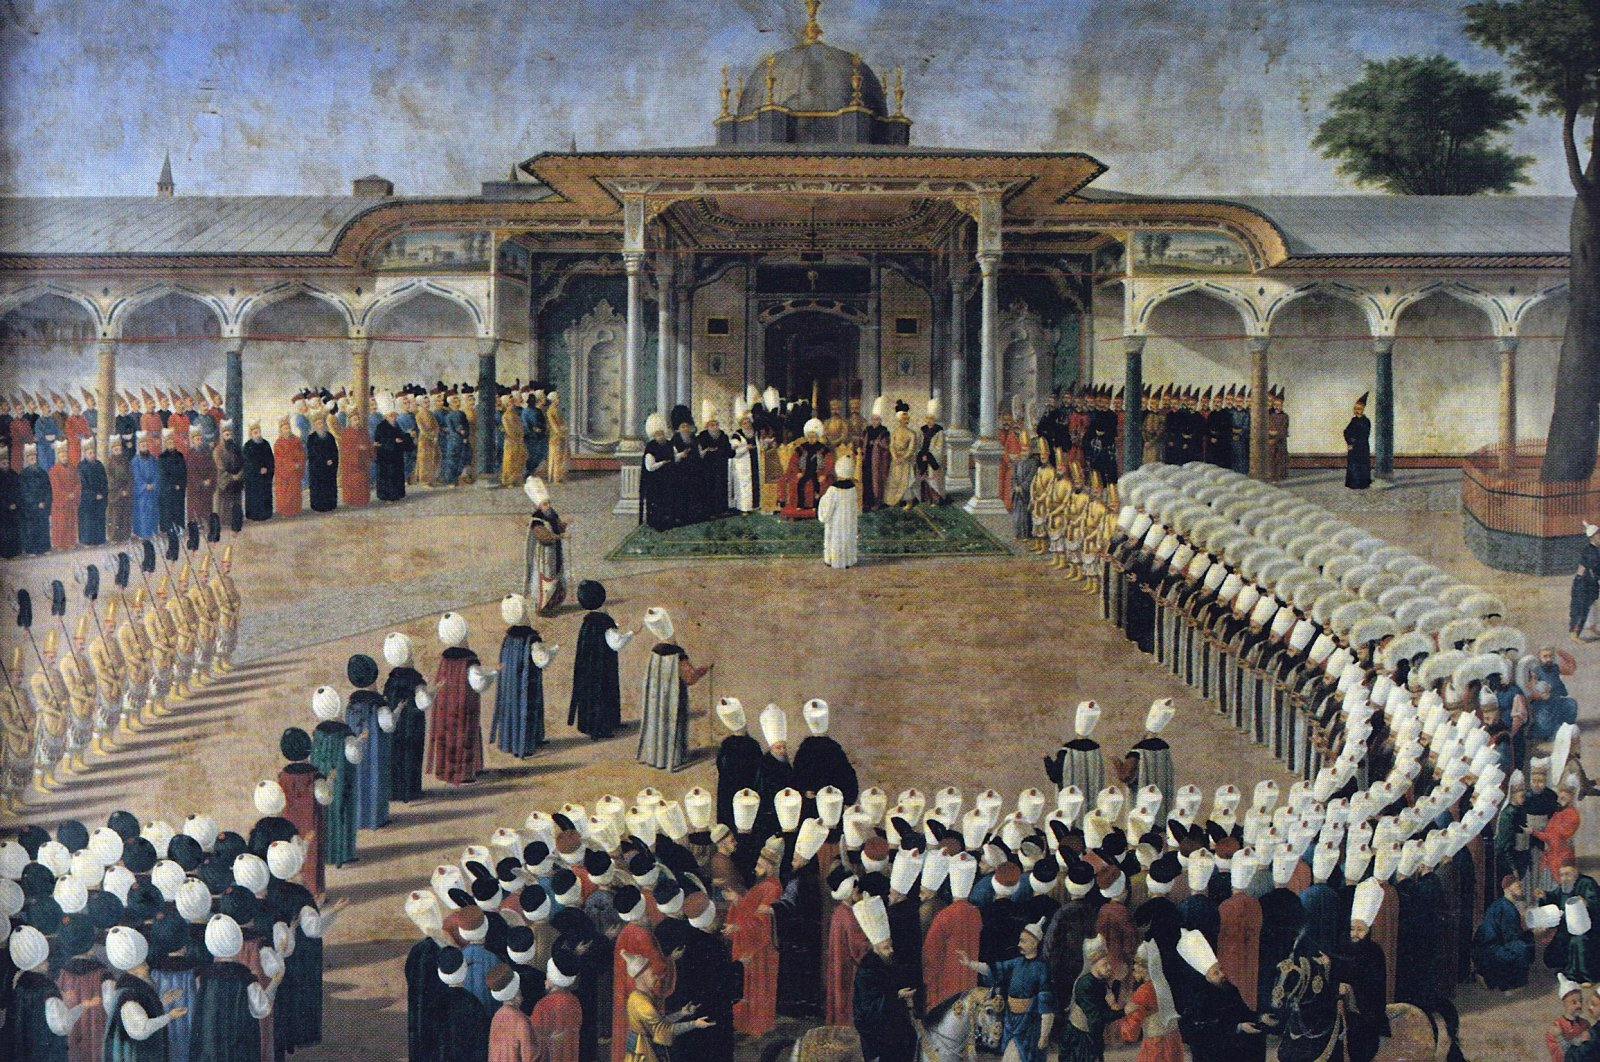 Selim III receives dignitaries during an audience at the Gate of Felicity, Topkapı Palace in the Painting by Konstantin Kapıdağlı, 1789. (Wikimedia Photo)